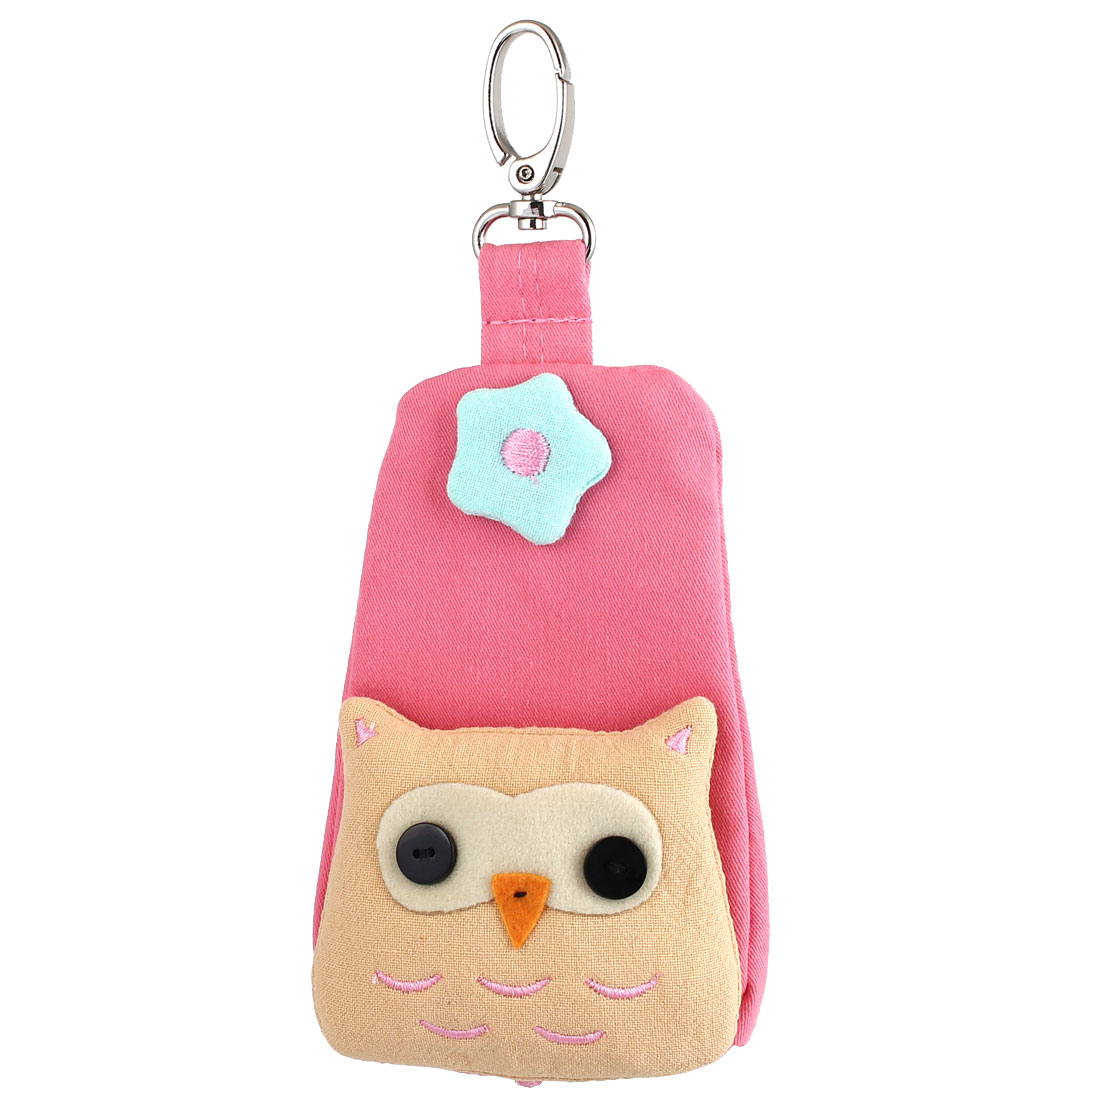 Lobster Clasp Zip Up Cloth Owl Head Decor Key Coin Holder Bag Purse Wallet Pink